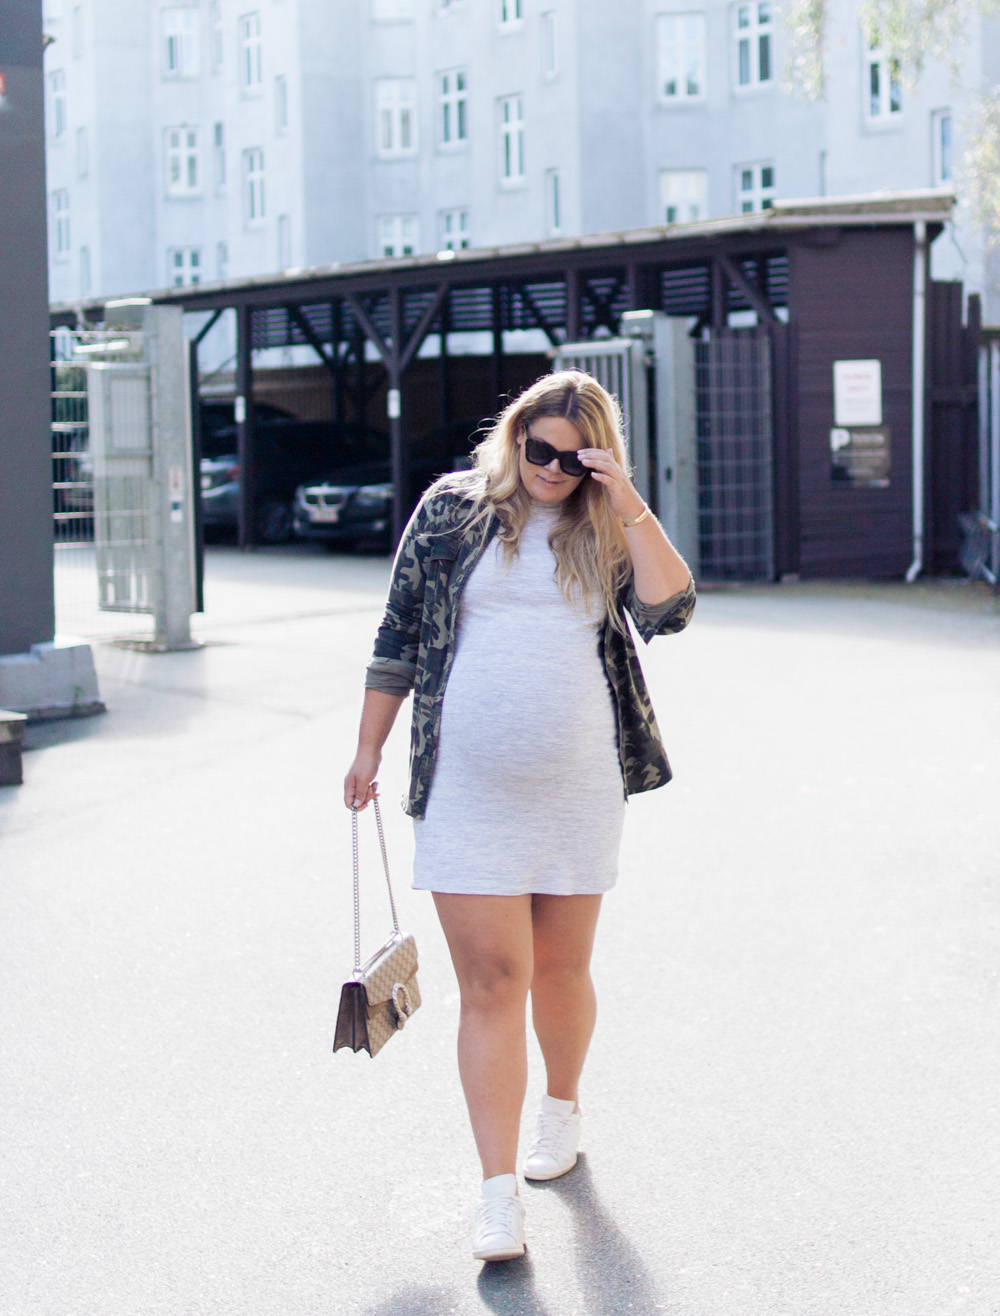 gravid-kjole-acie-uge-40-outfit-14-of-15